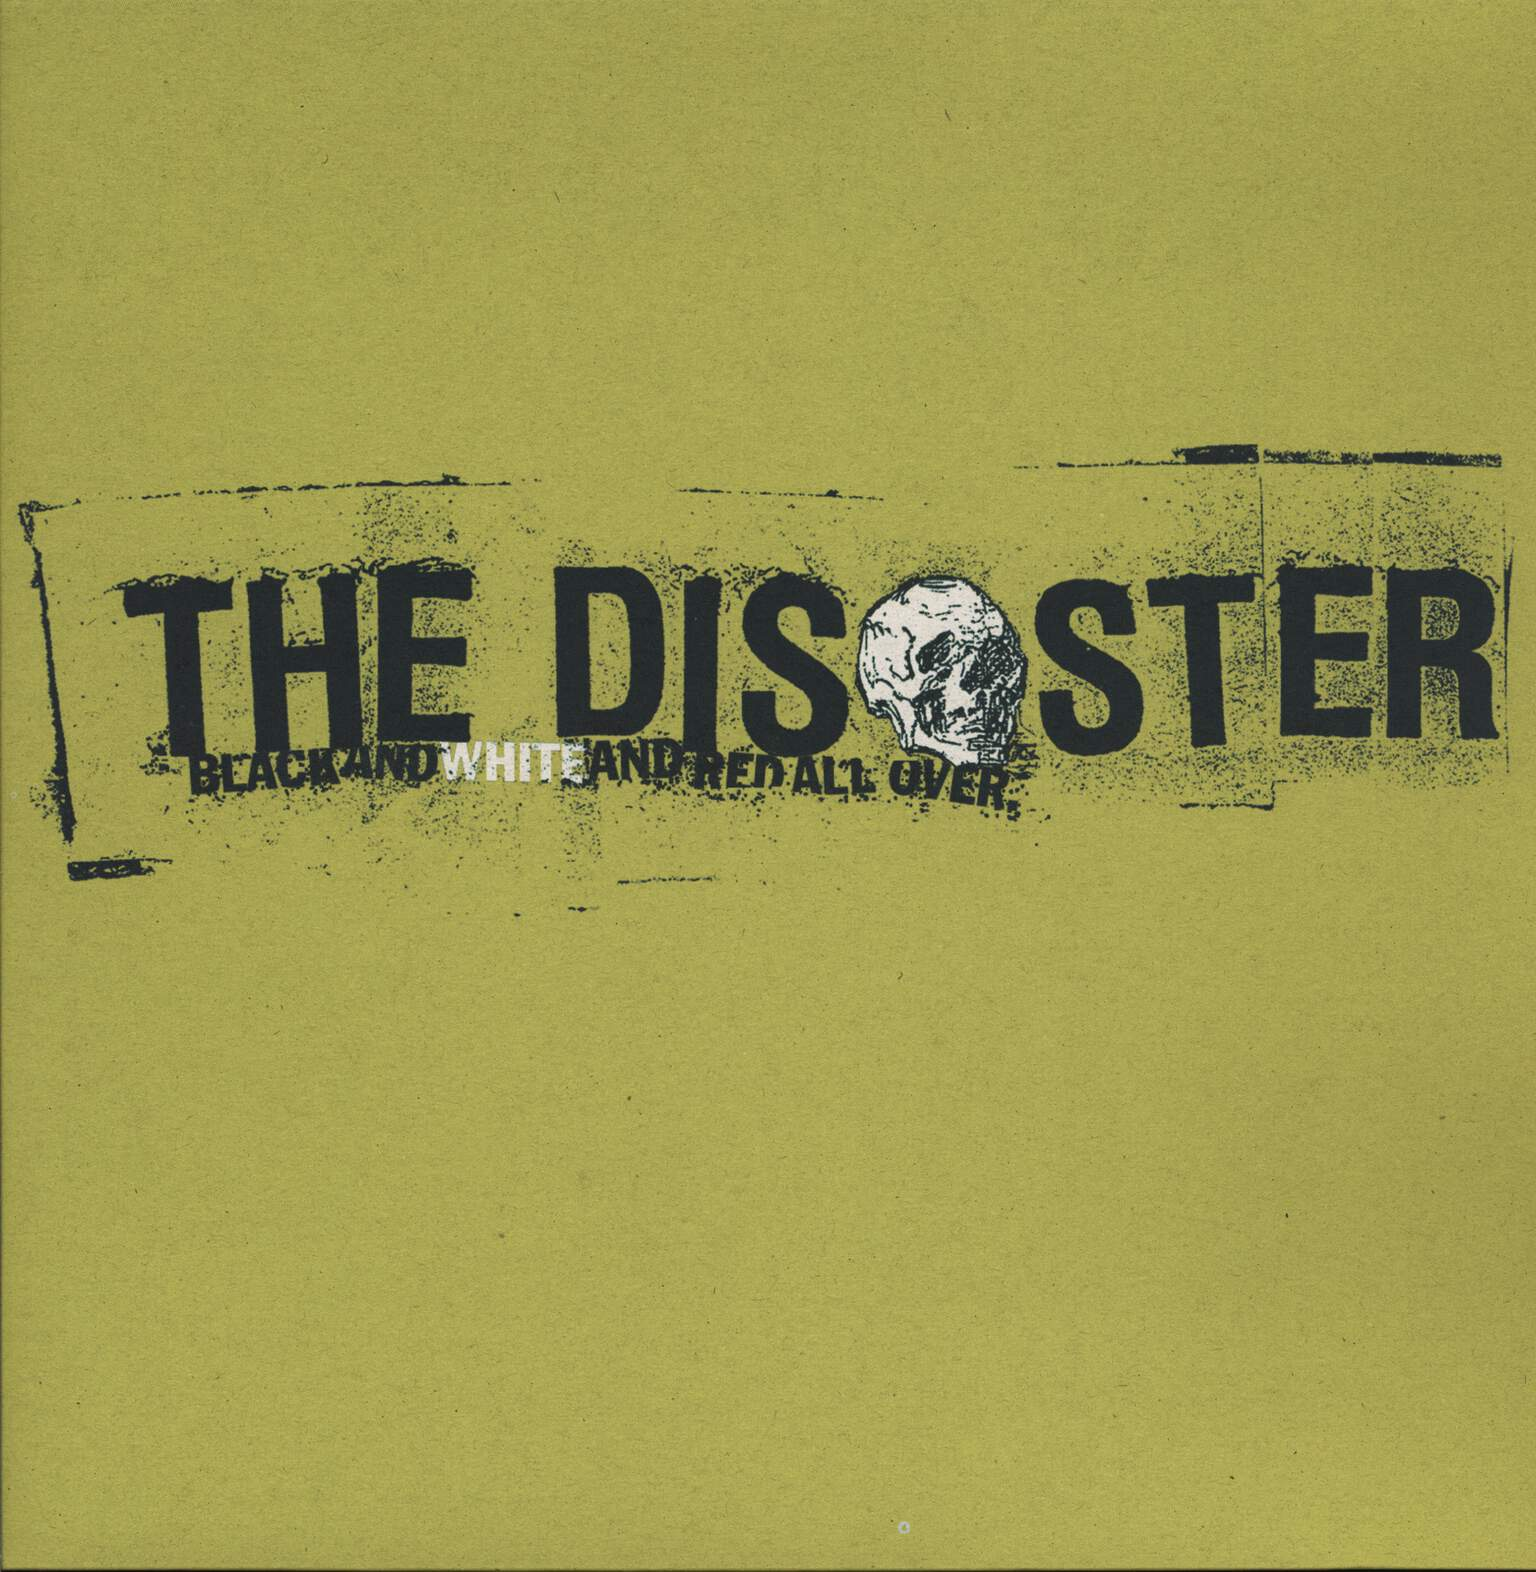 The Disaster: Black And White And Red All Over, LP (Vinyl)